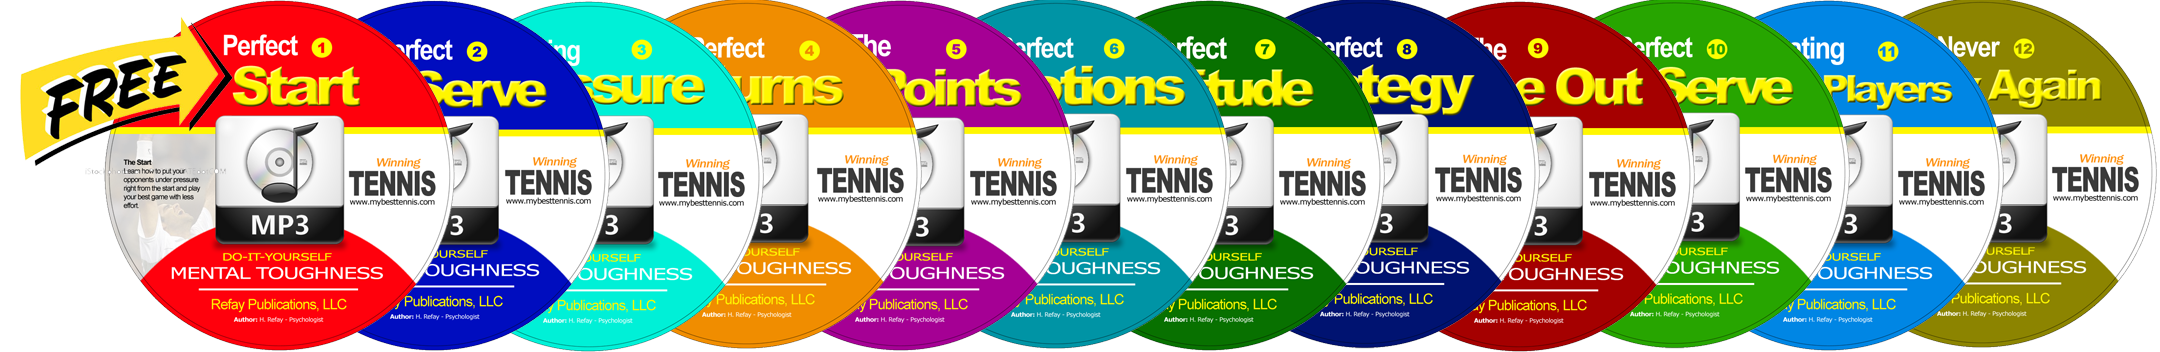 Tennis Mental Toughness - First One Free